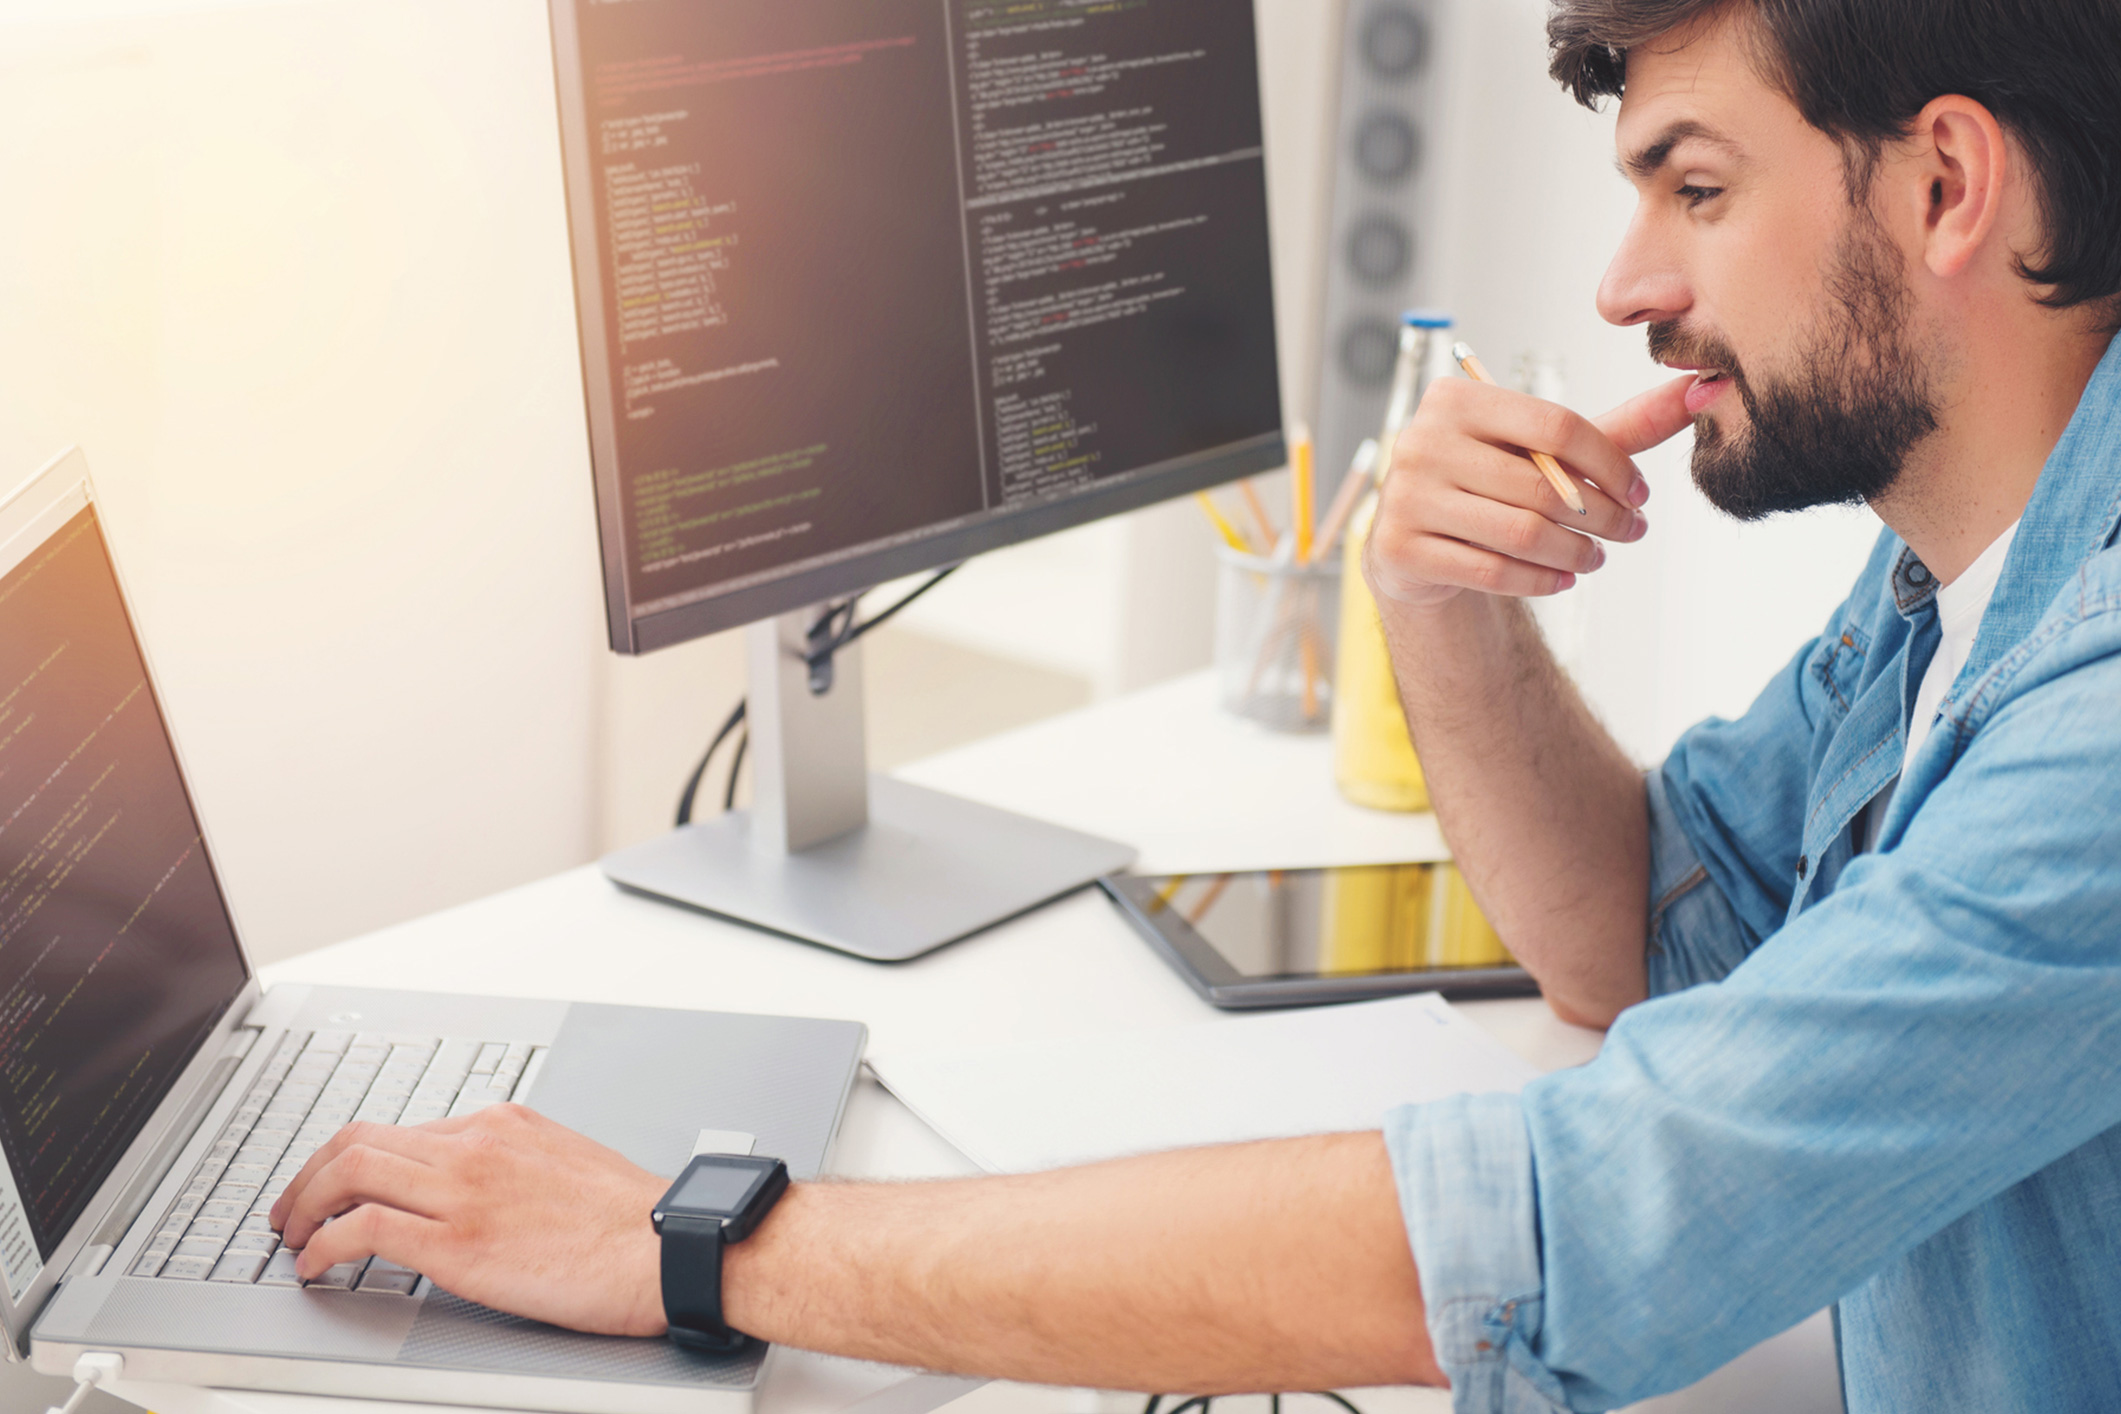 How Long Does It Take To Learn To Code? - HyperionDev Blog